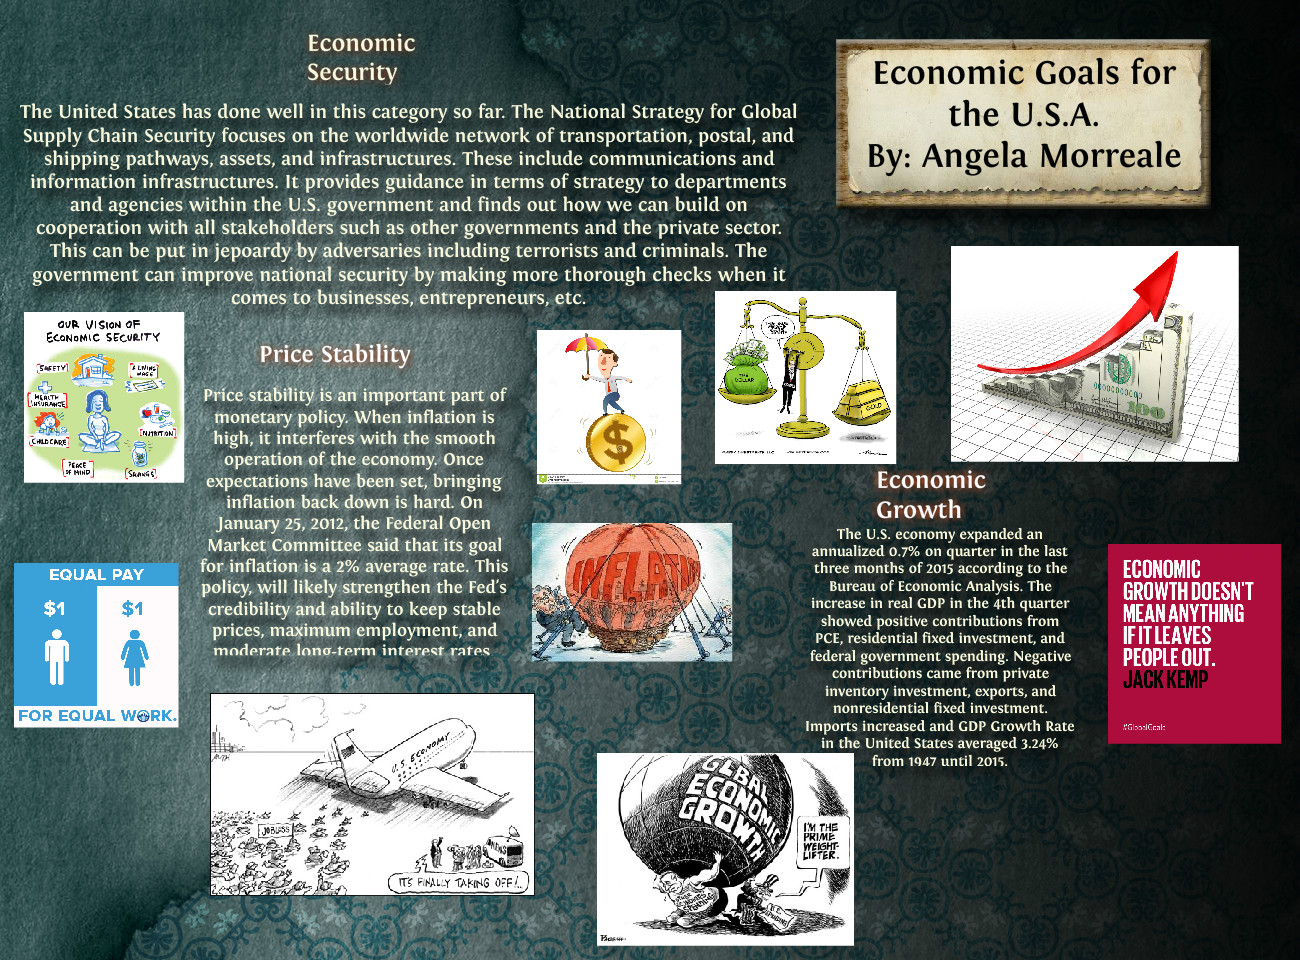 Economic Goals for the USA